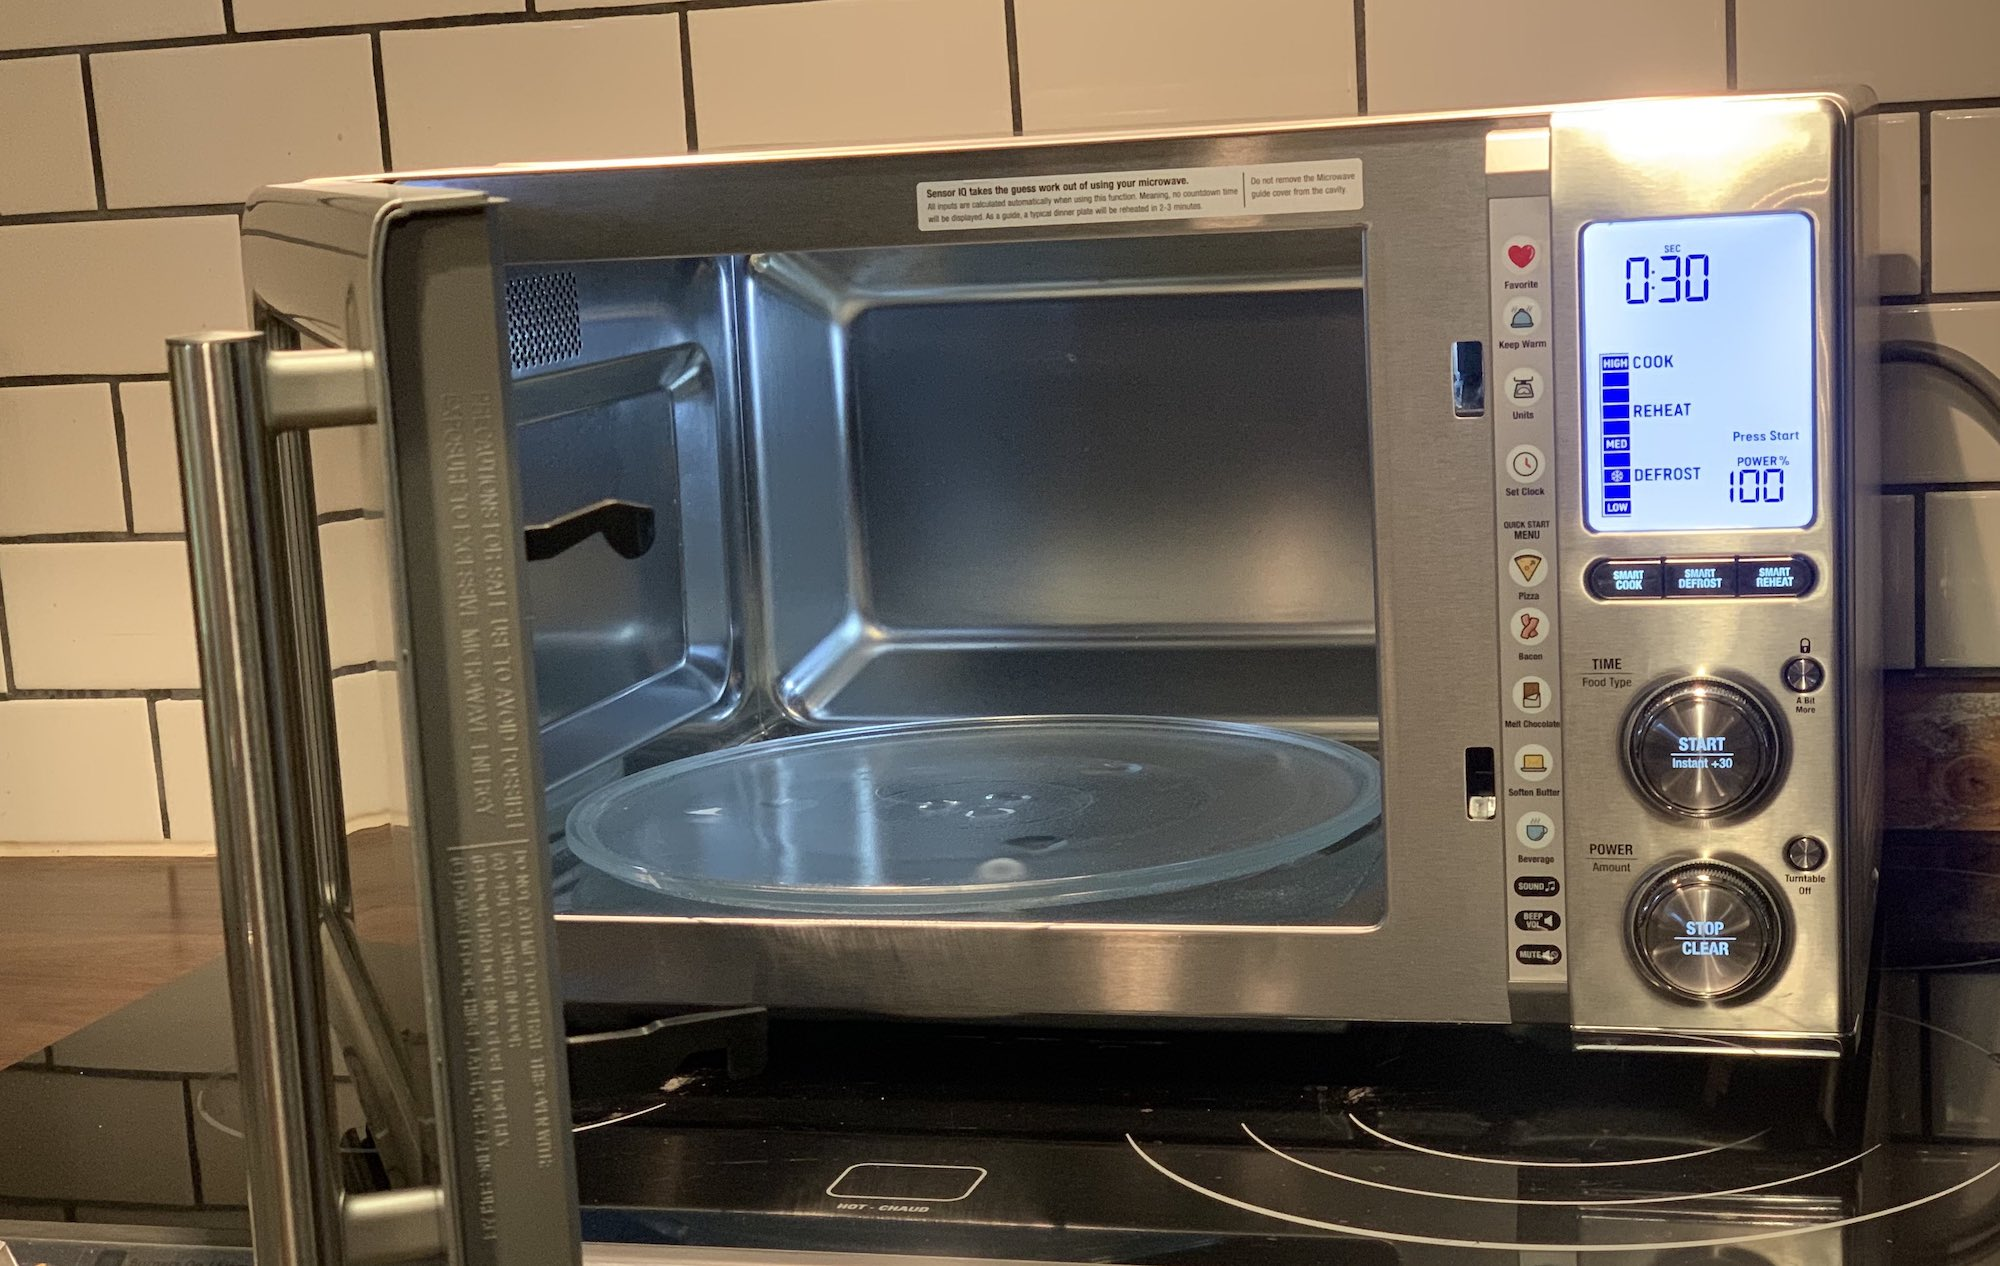 Breville Smoothwave microwave review